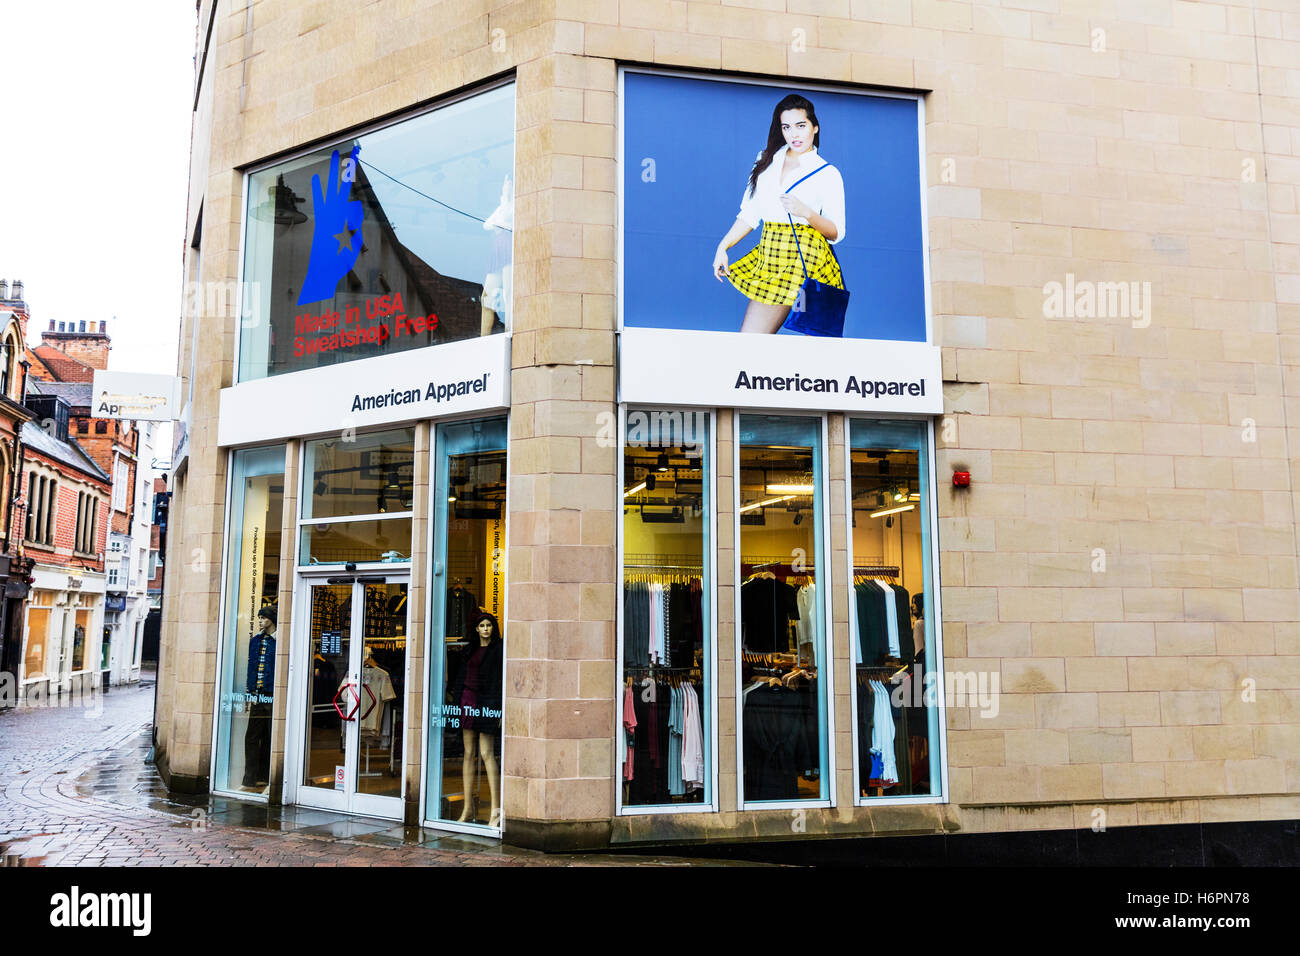 eb894c558407 American Apparel clothes shop clothing store high street shops Nottingham  UK GB England sign exterior front